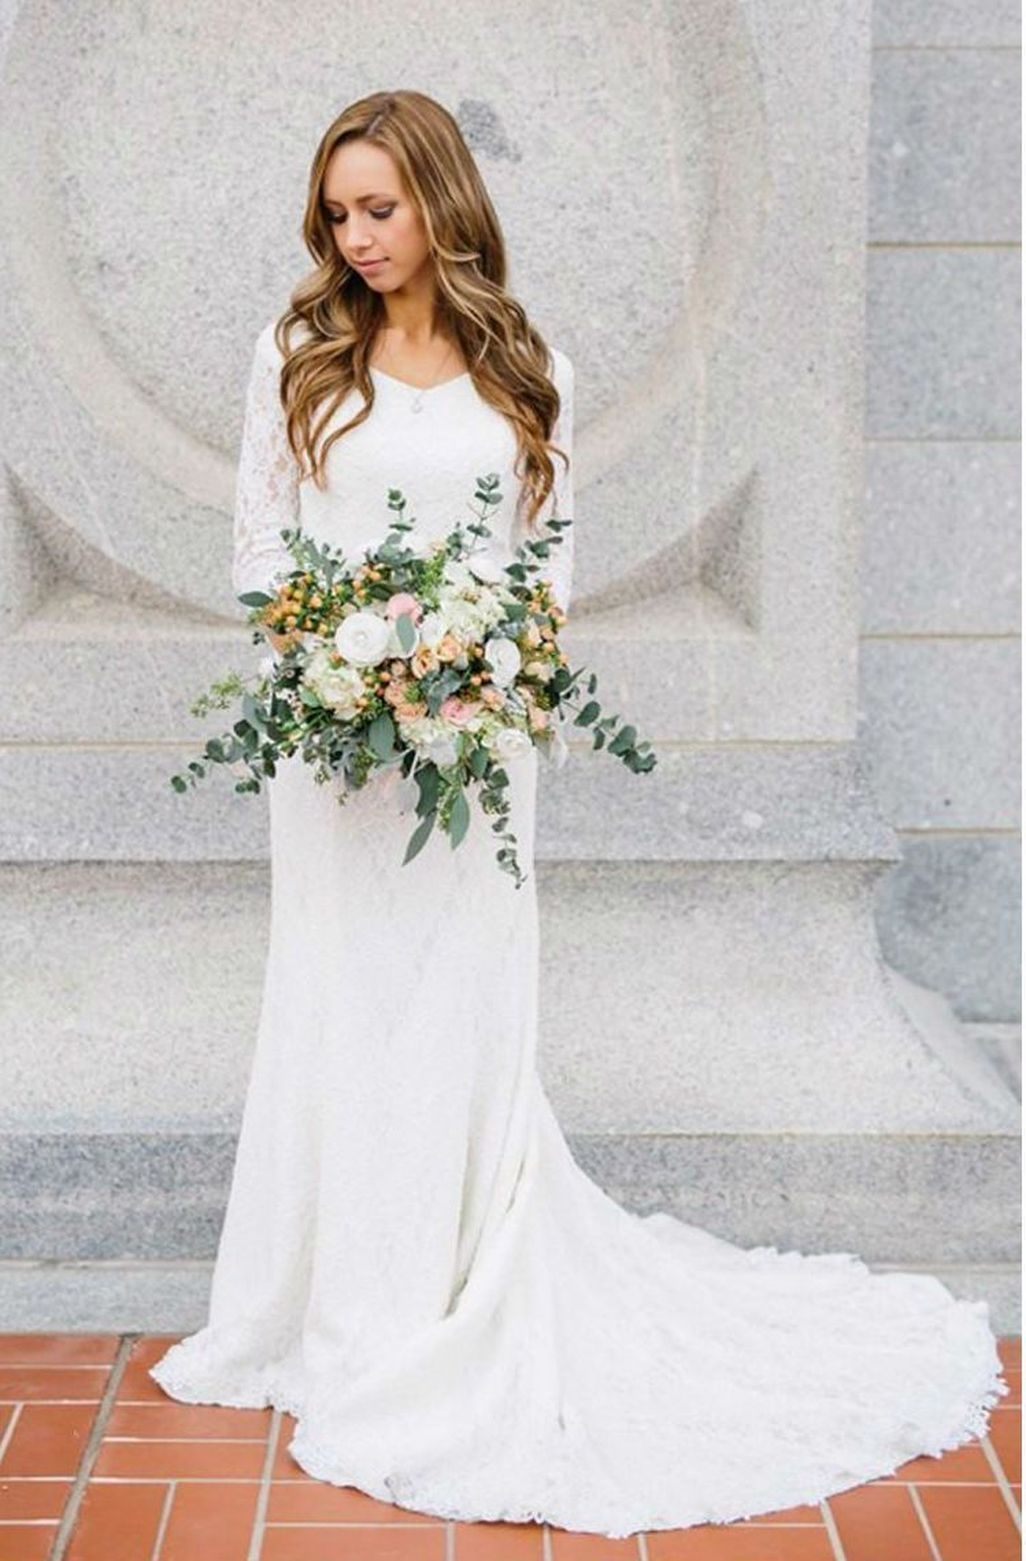 Cool beautiful rustic vintage wedding dress ideas every women